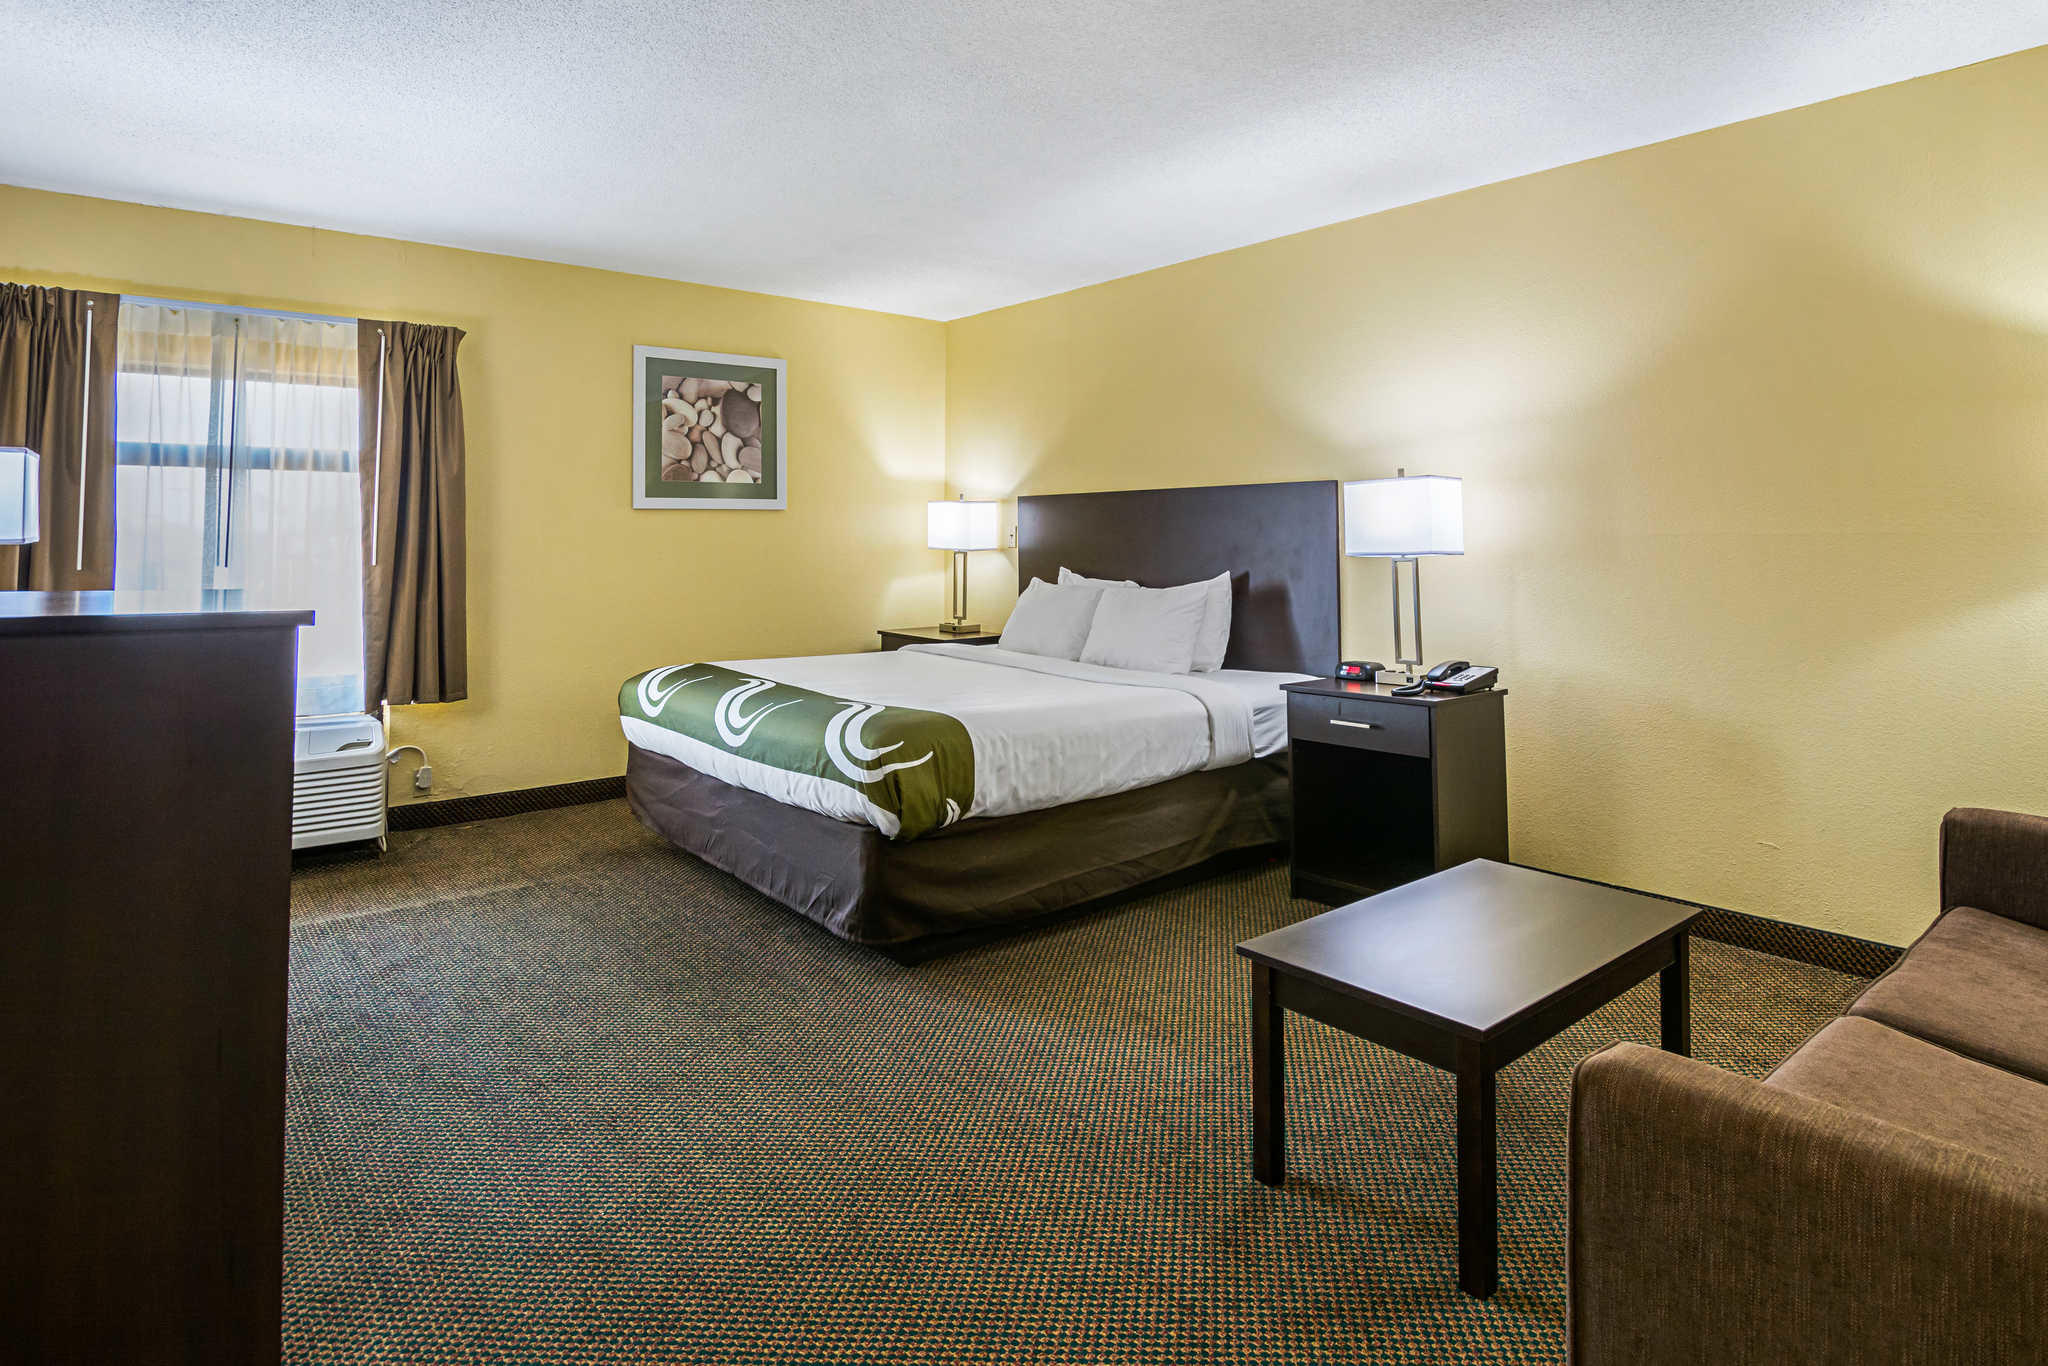 Quality Inn & Suites Greensburg I-74 image 14